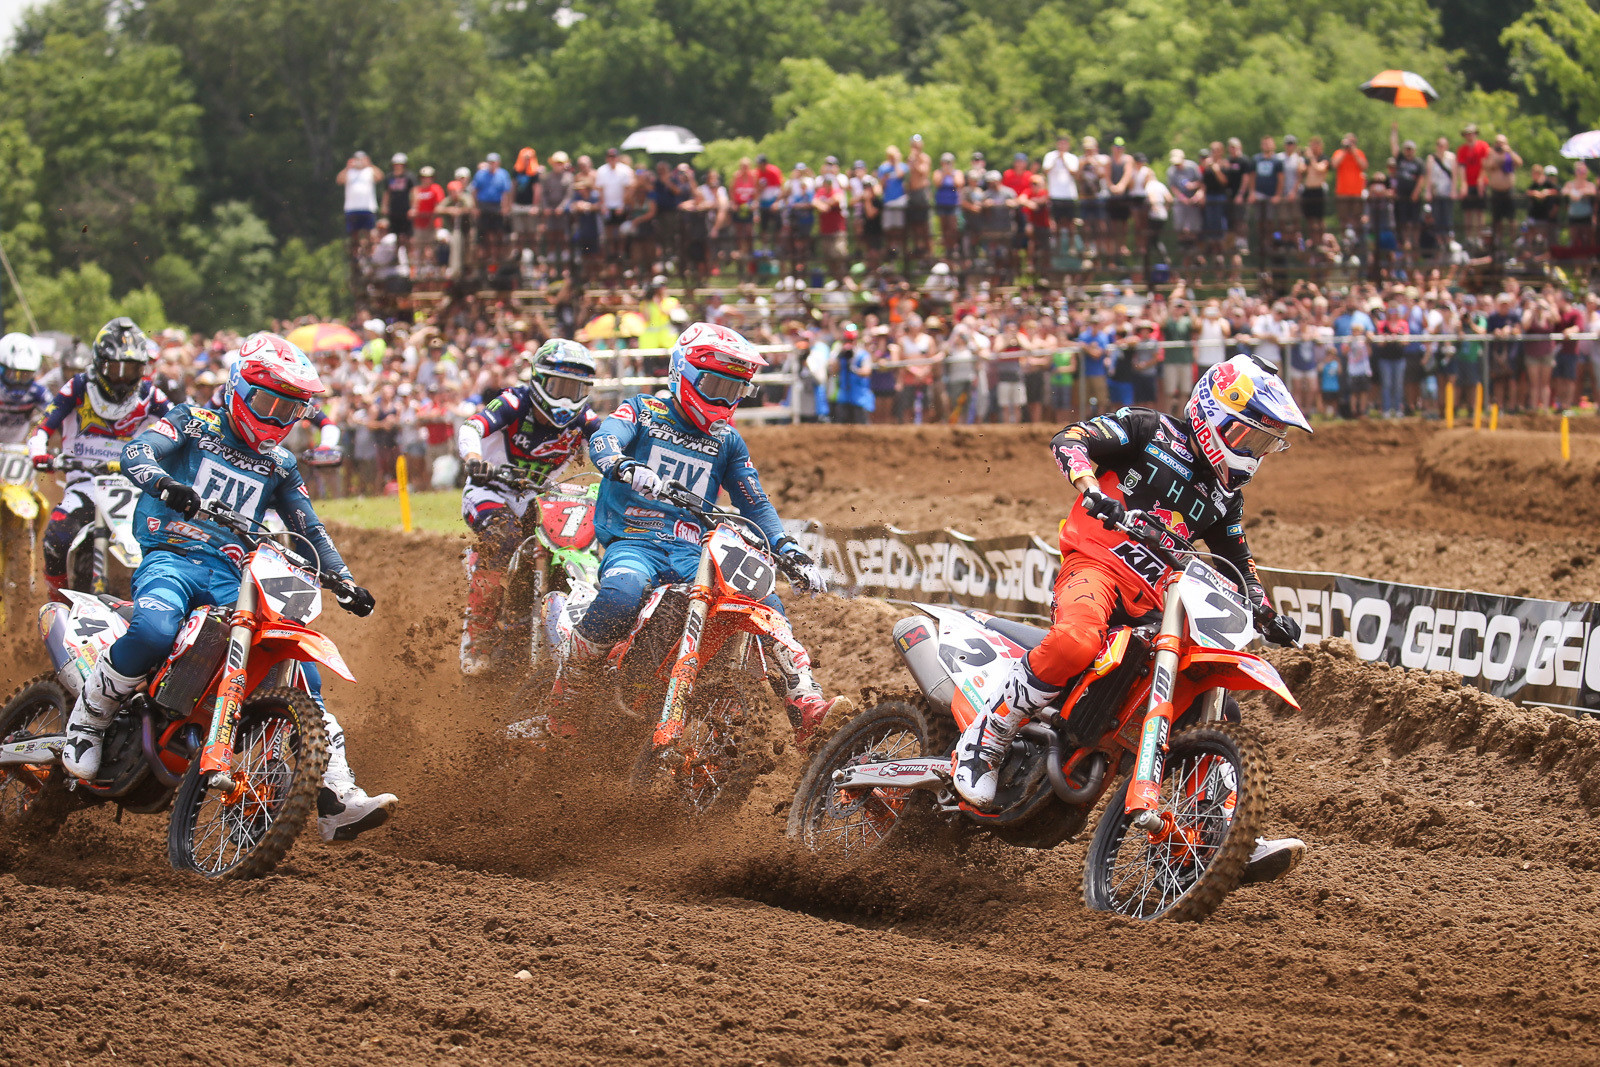 Hot on Coop's tail were Justin Bogle and Blake Baggett.